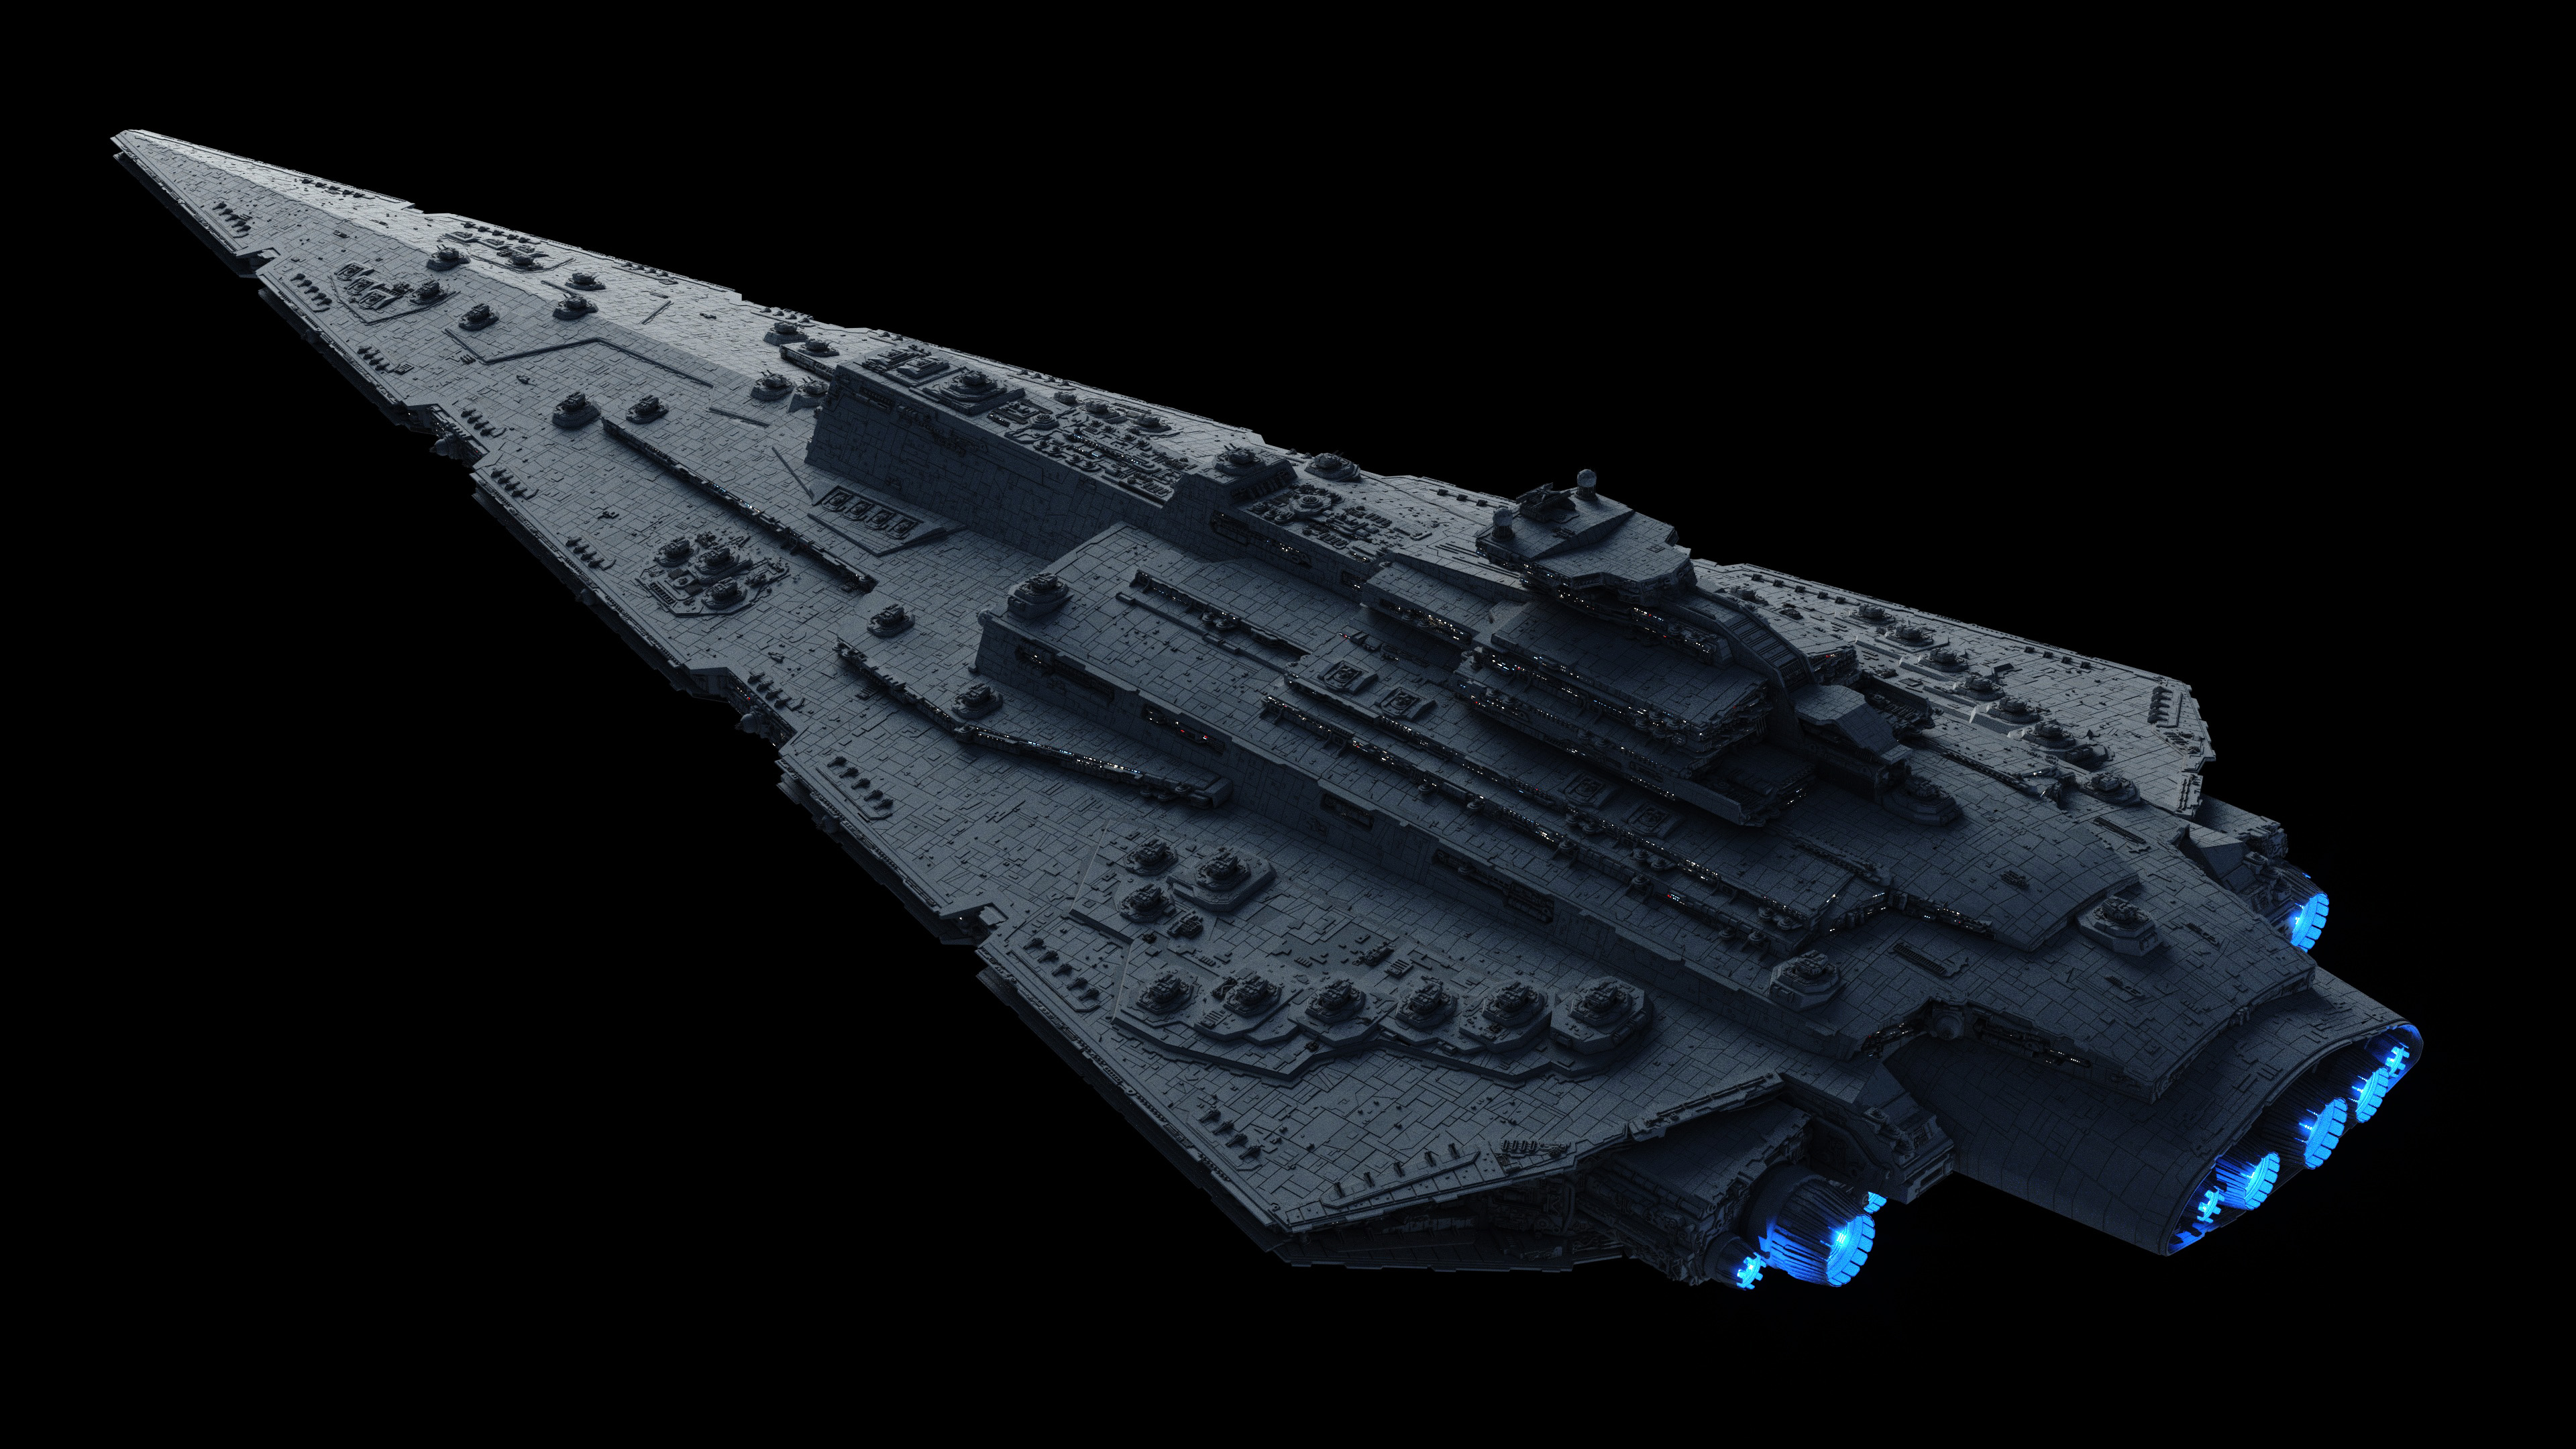 Star Wars Dreadnought